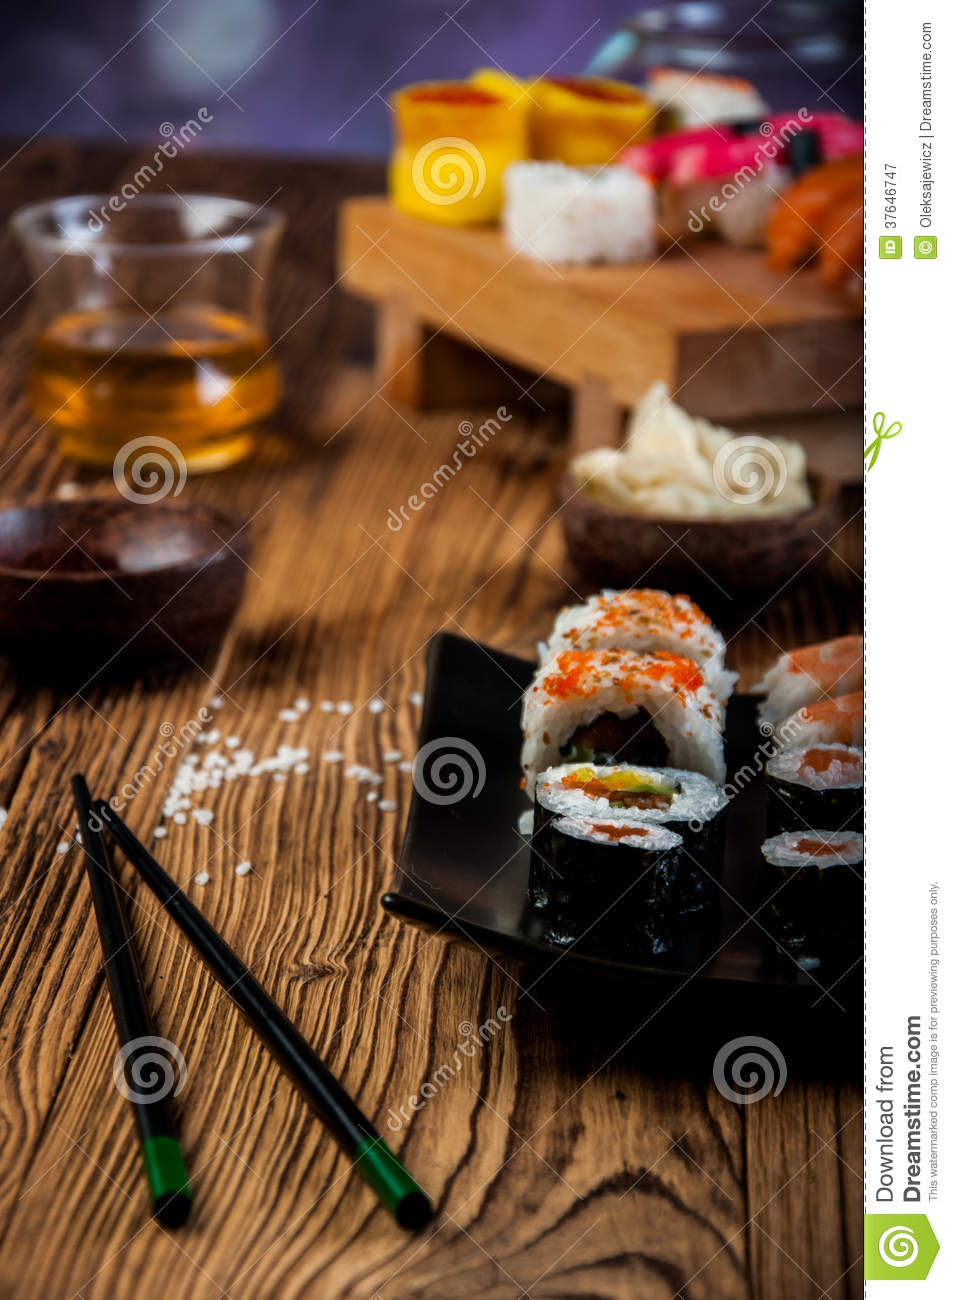 Download Healthy And Tasty Japanese Sushi With Seafood Stock Image - Image of ethnic, green: 37646747